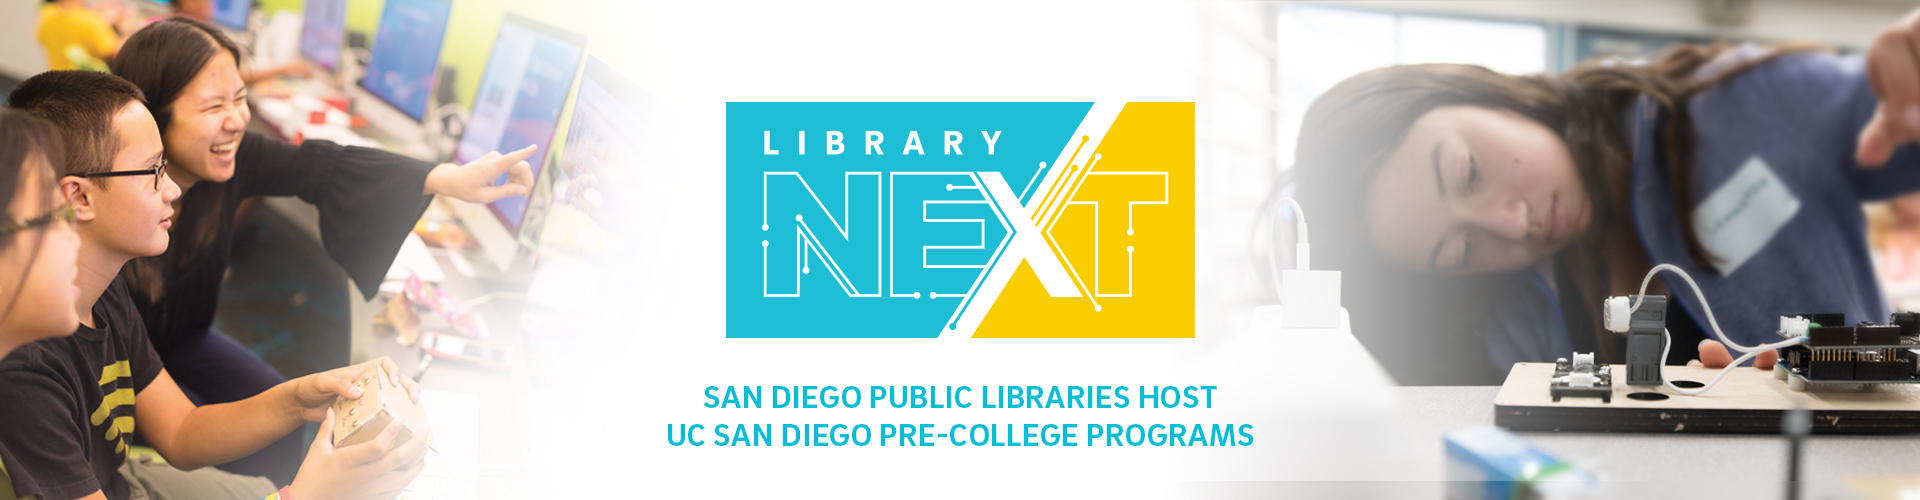 Library Next Banner